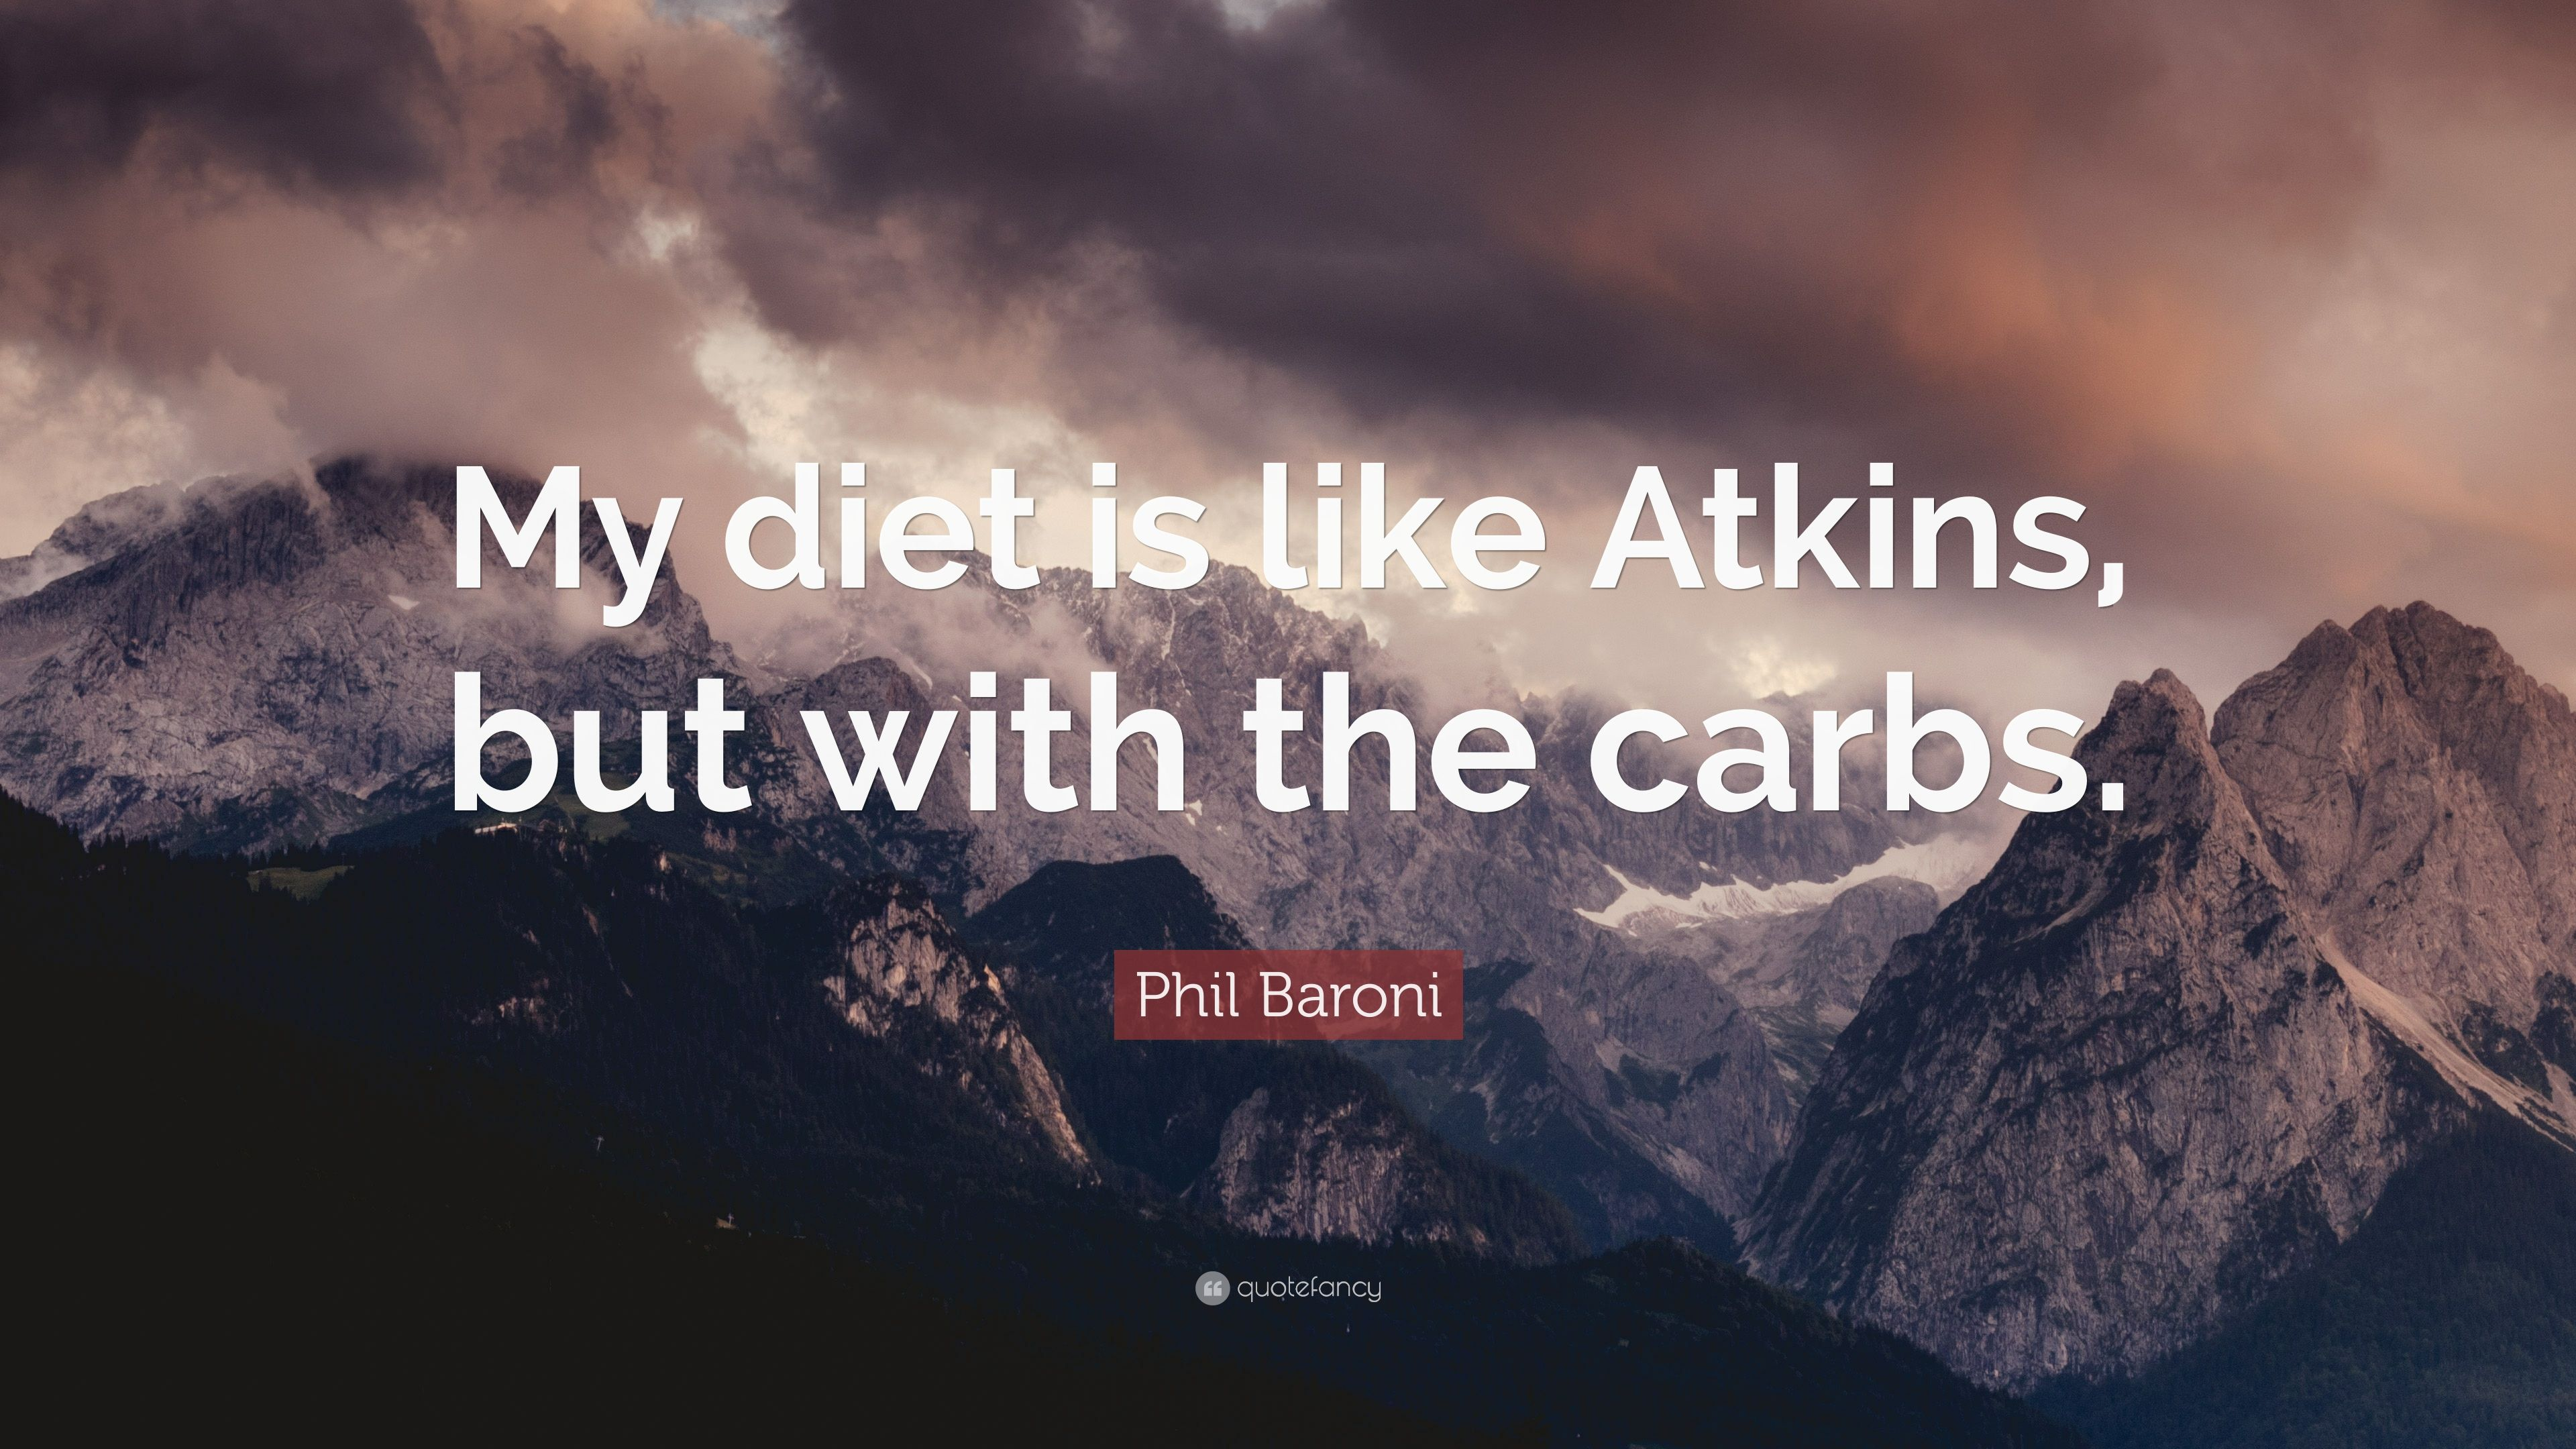 Phil Baroni Quote My Diet Is Like Atkins But With The Carbs 7 Wallpapers Quotefancy